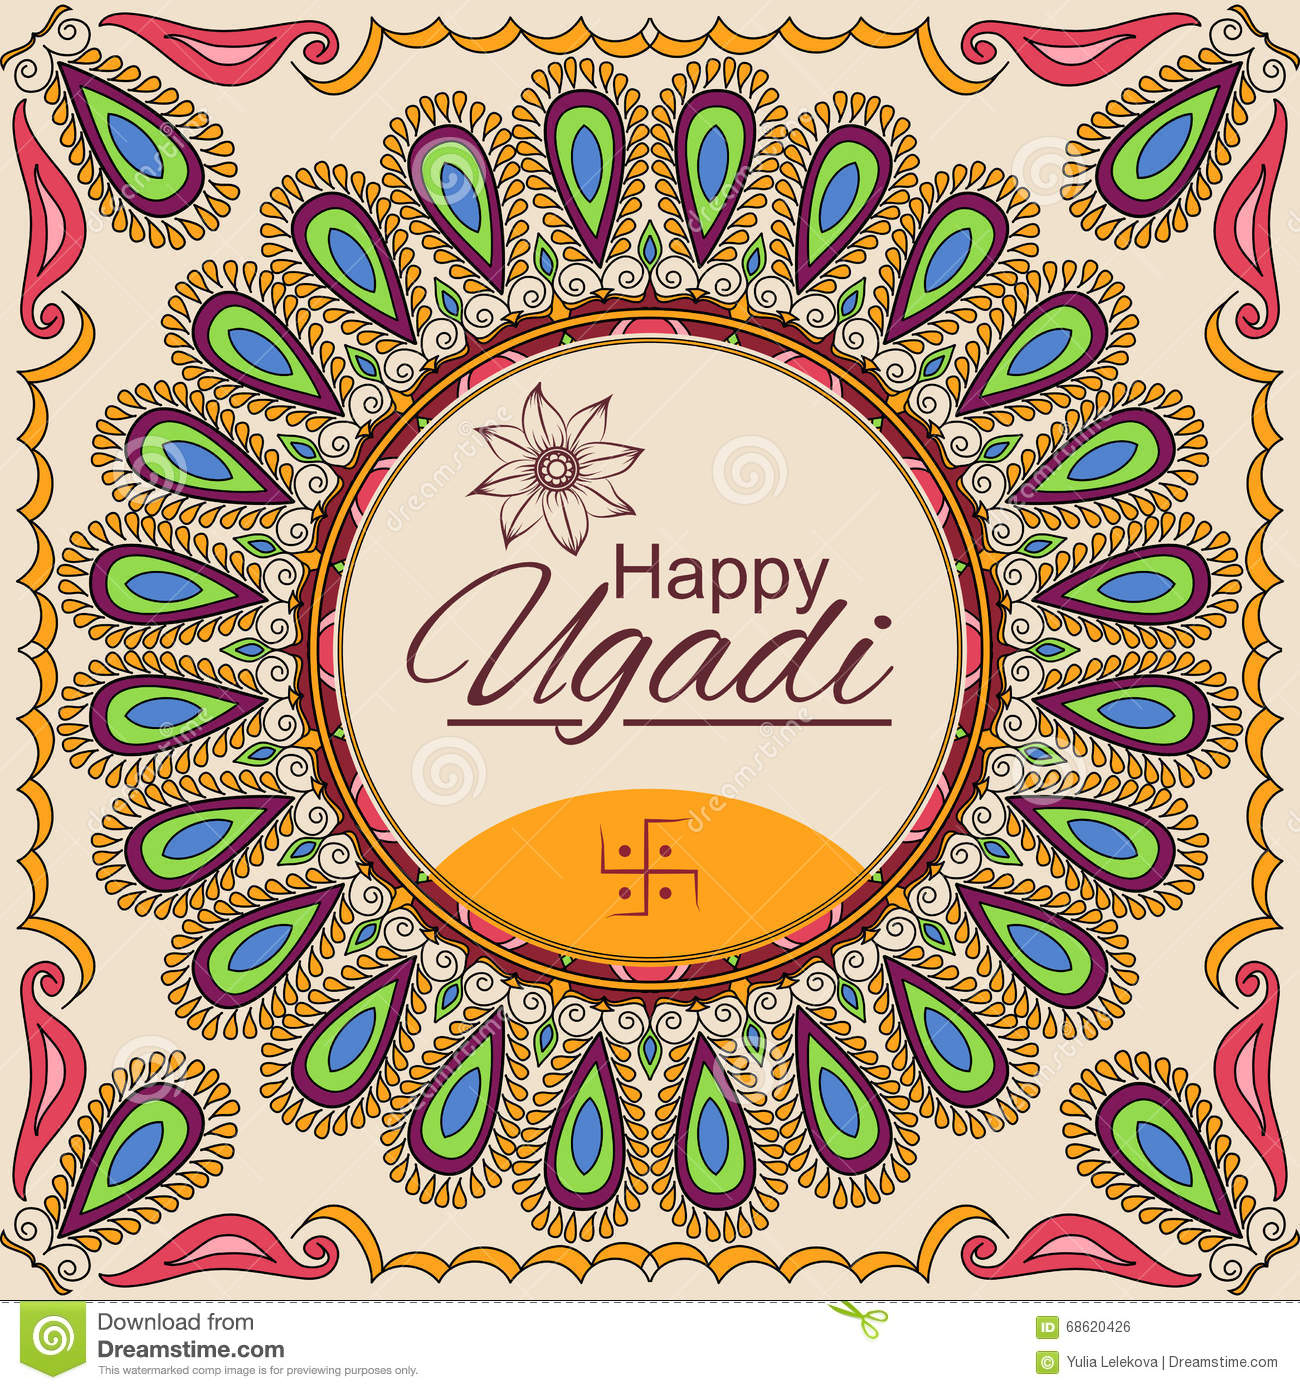 Happy ugadi vector greeting card with mandala frame indian lunar happy ugadi vector greeting card with mandala frame indian lunar new year celebration kristyandbryce Images